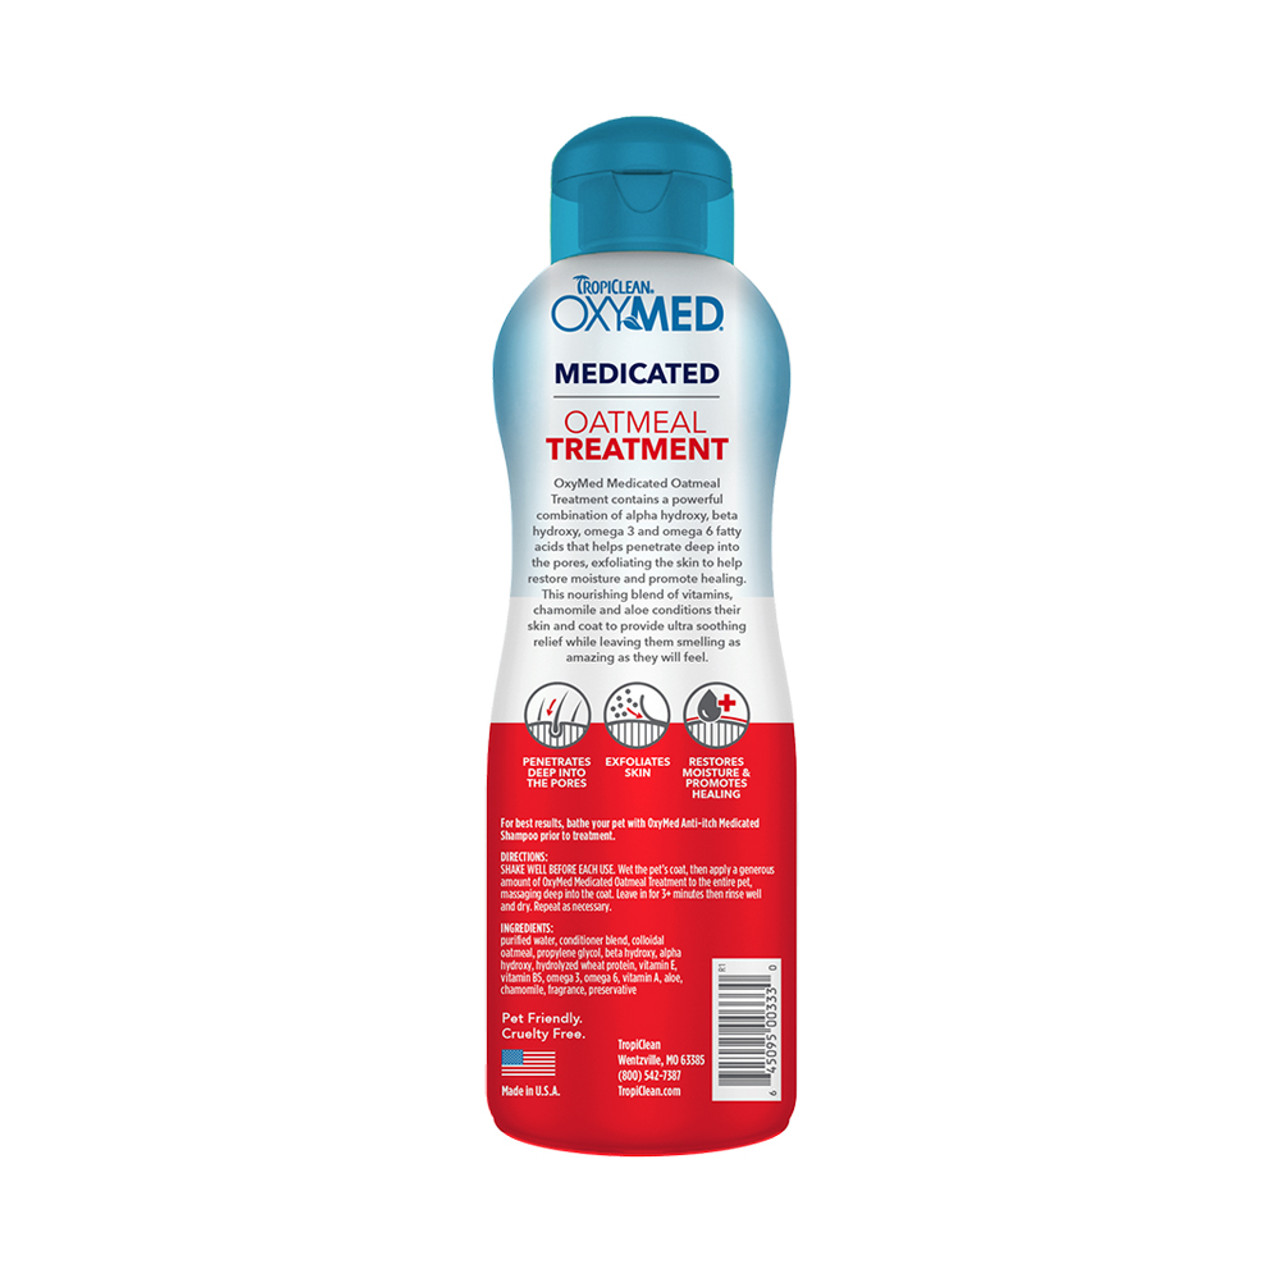 TropiClean OxyMed Medicated Anti Itch Treatment Rinse for Pets